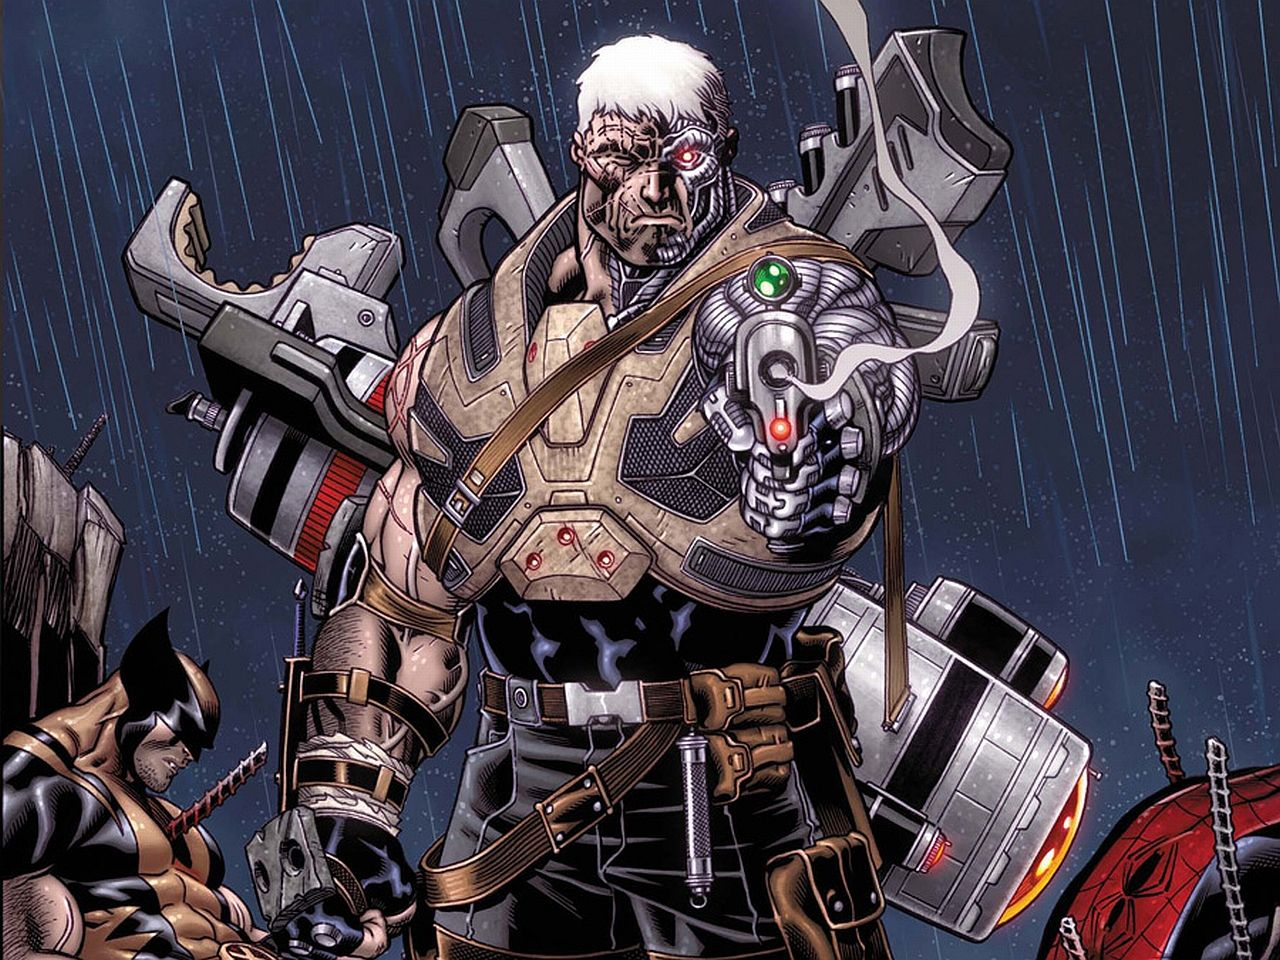 Cool Wallpaper Marvel Cable - babbffdd5e358889676b0a6bbcf038e1  Perfect Image Reference_952957.jpg